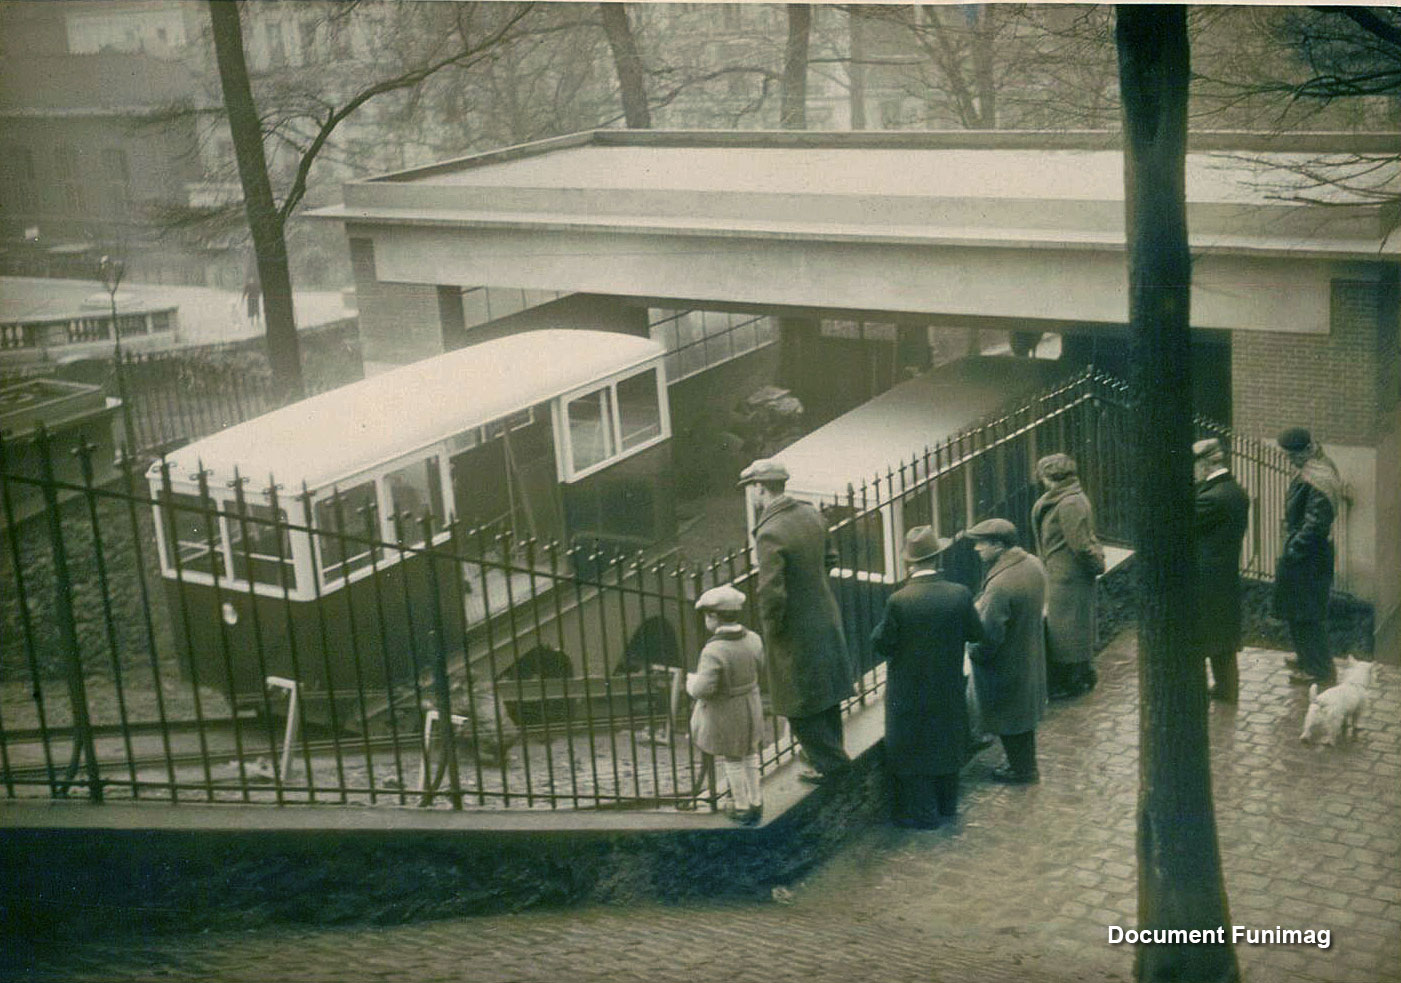 Installation of new electric funicular in 1935 / Installation du nouveau funiculaire électrique en 1935